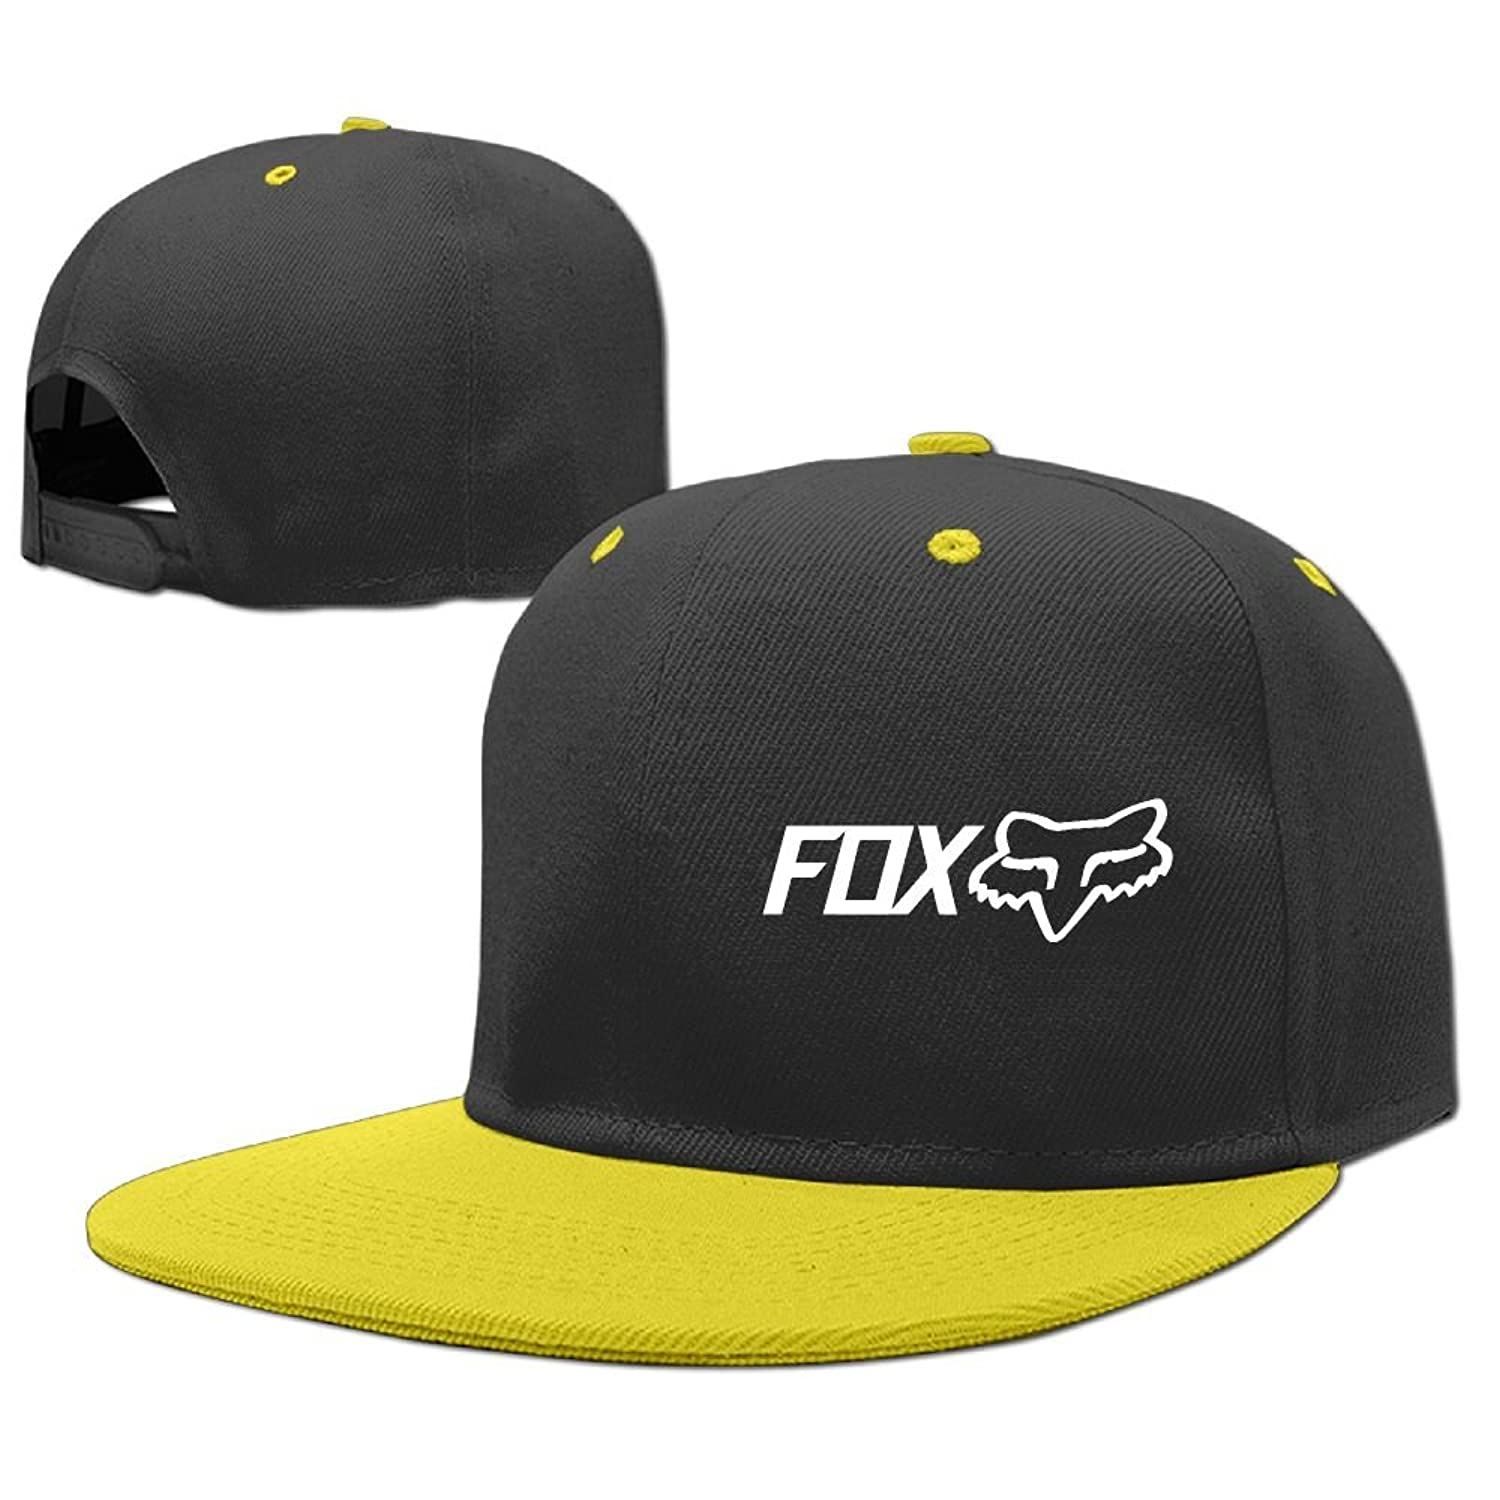 Children s Hip Hop Baseball Cap Fox Racing Shox Kid s Cute Cool Fitted Cap  with Adjustable Snapback 39f5bbdfc159